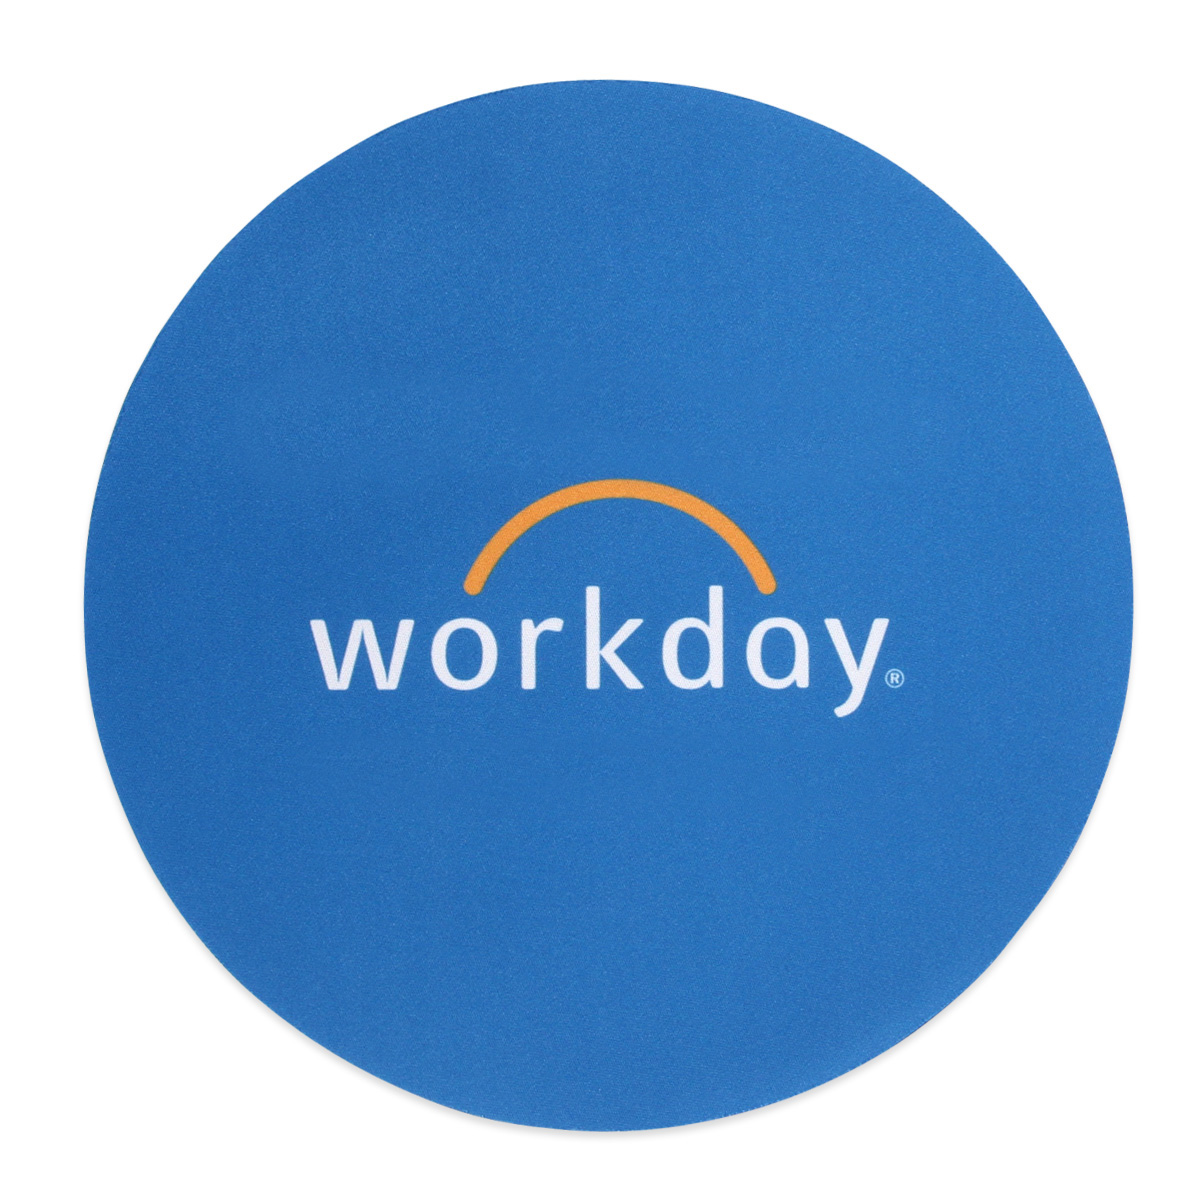 Workday stock options